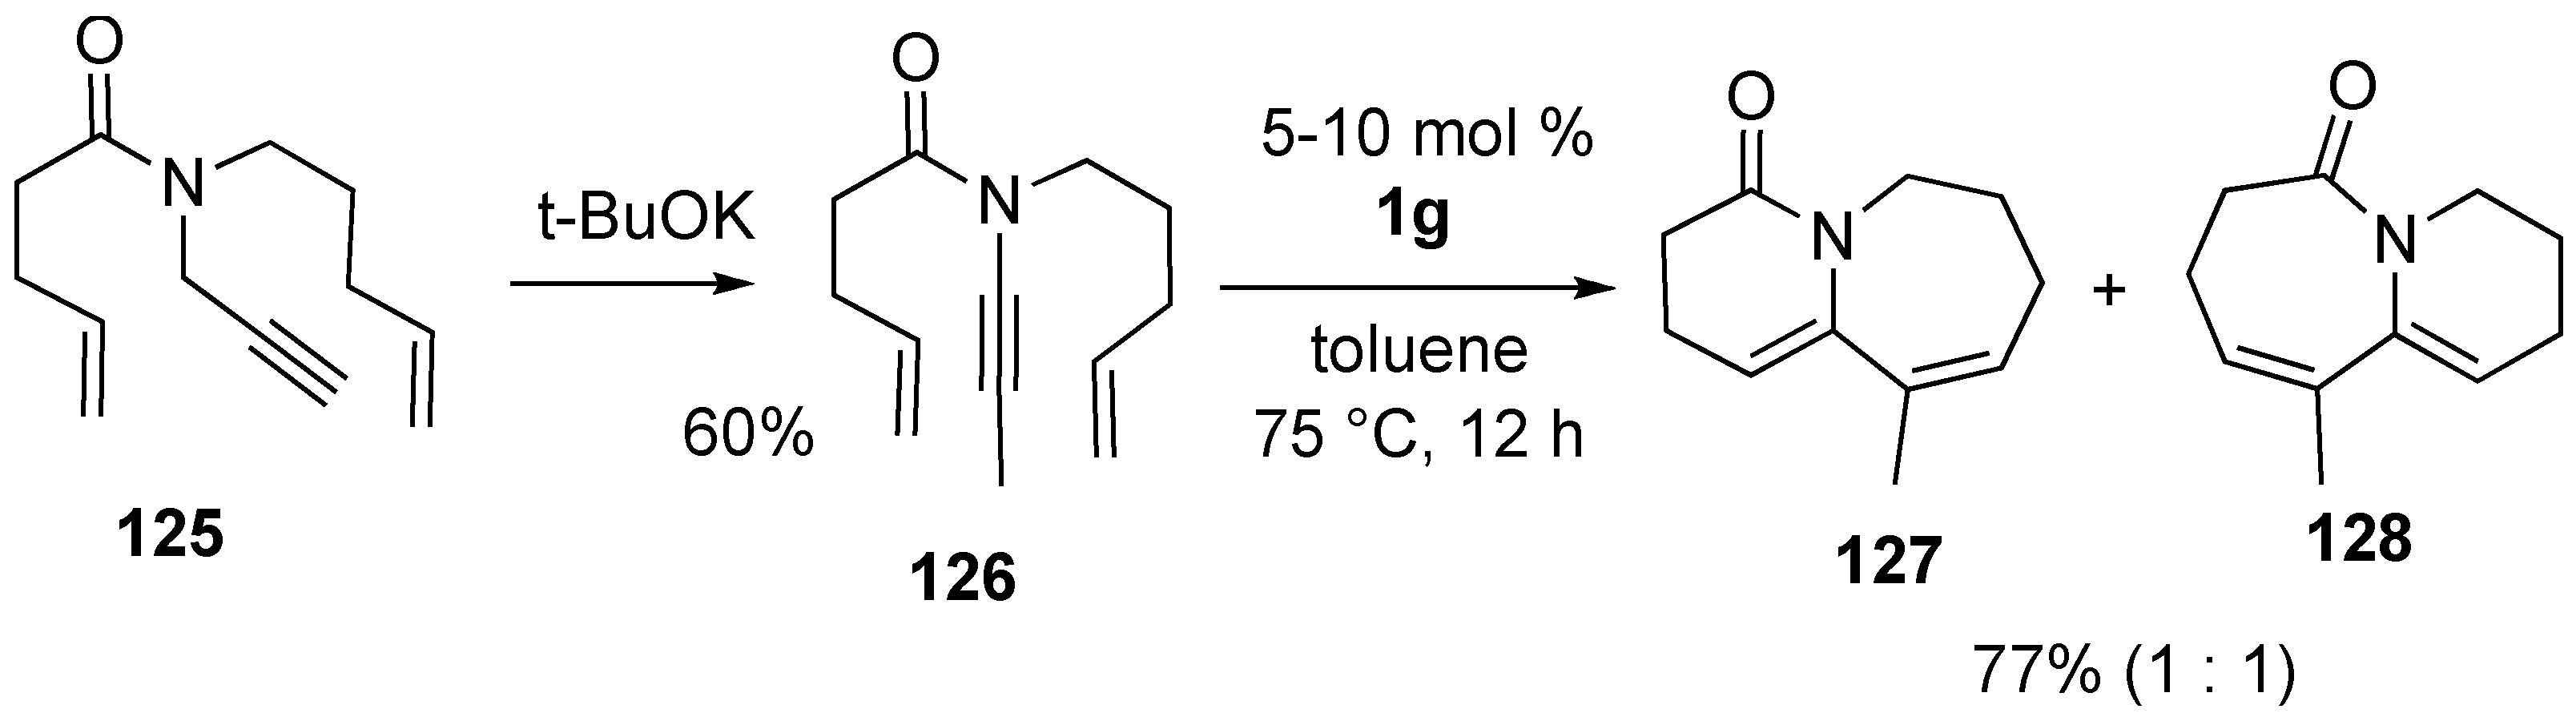 ruthenium carbene metathesis New ruthenium grubbs' and hoveyda–grubbs' second generation catalysts bearing n-alkyl/n-isopropylphenyl n-heterocyclic carbene (nhc) ligands with syn or anti backbone configuration were obtained and compared in model olefin metathesis reactions different catalytic efficiencies were observed depending on the size of the n-alkyl group (methyl or cyclohexyl) and on the backbone configuration.